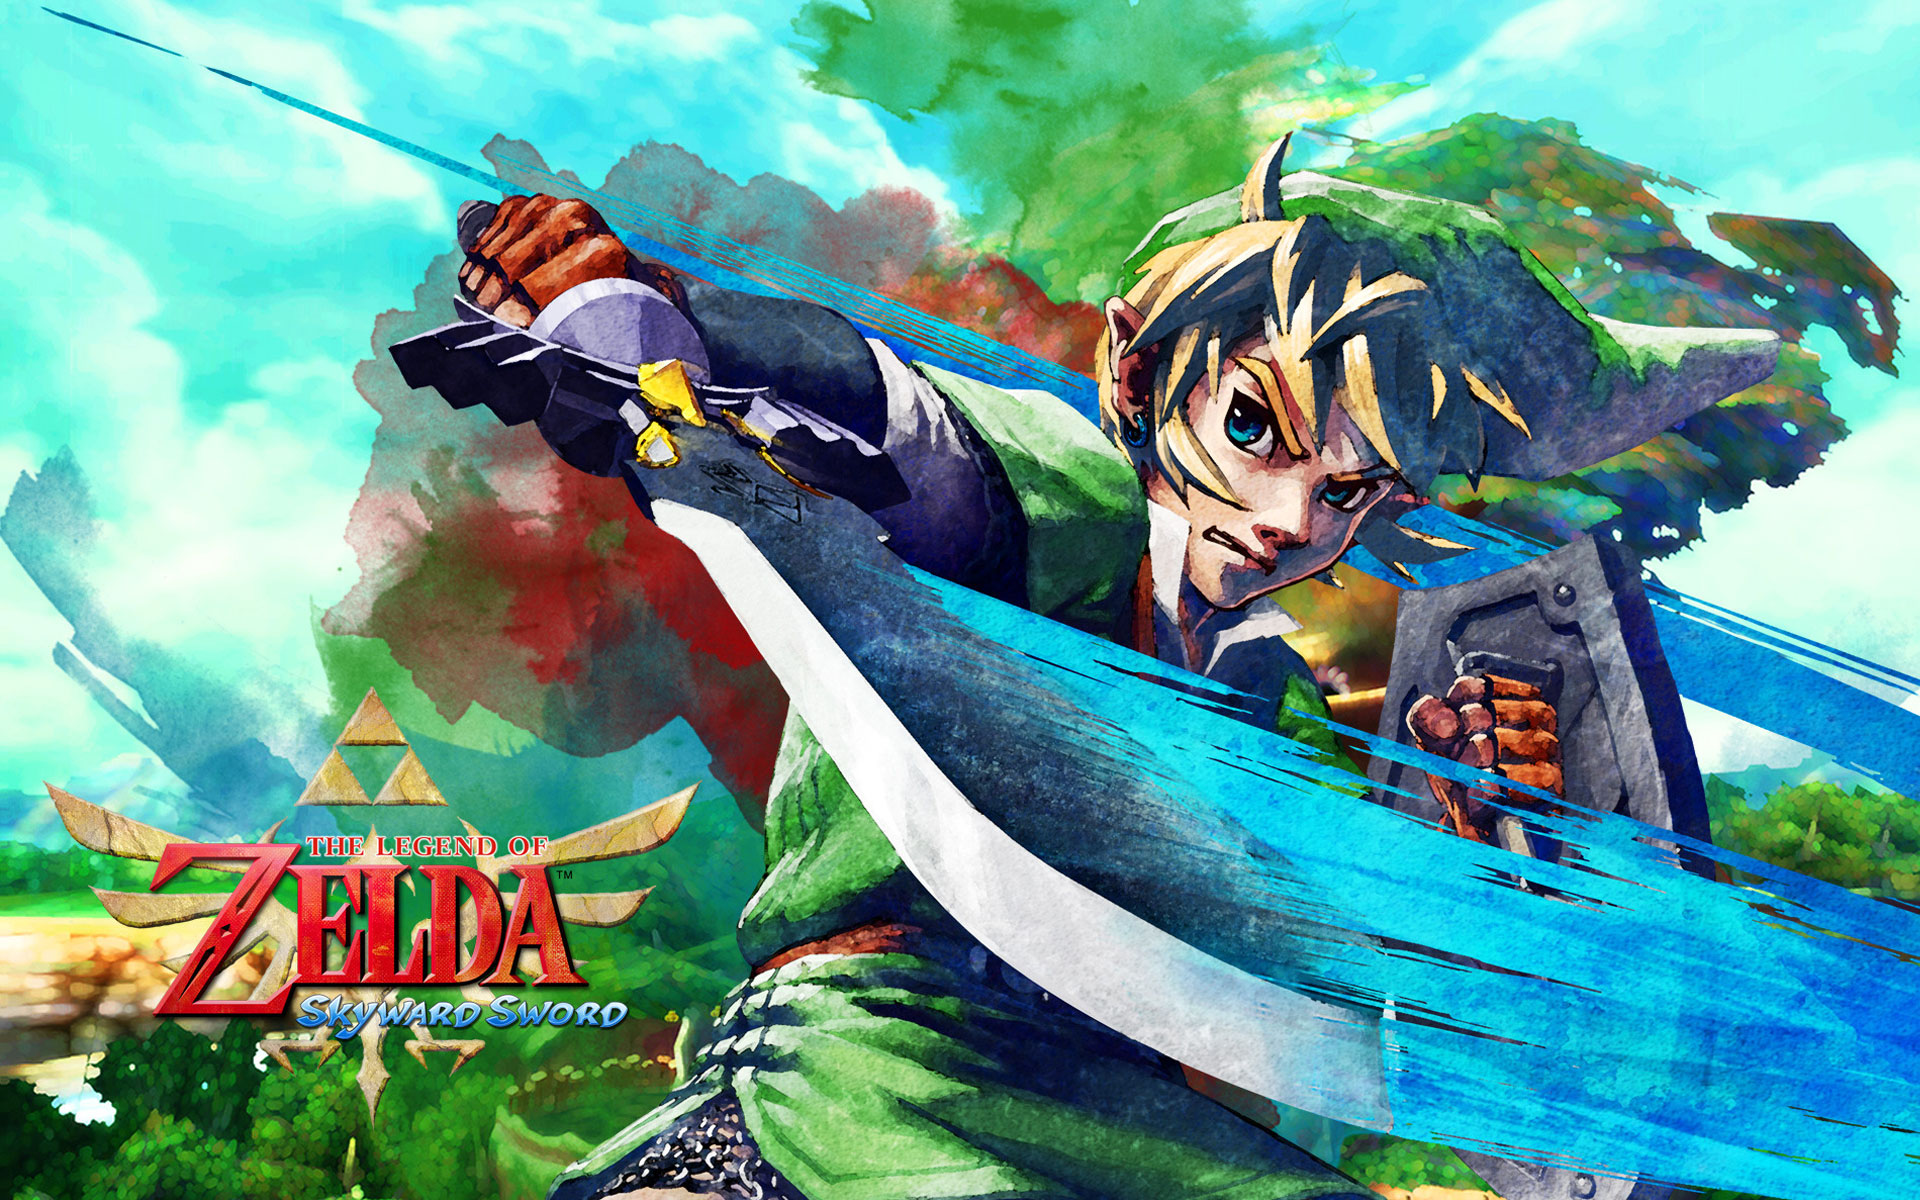 Zelda Skyward Sword Wallpapers in HD Page 3 1920x1200